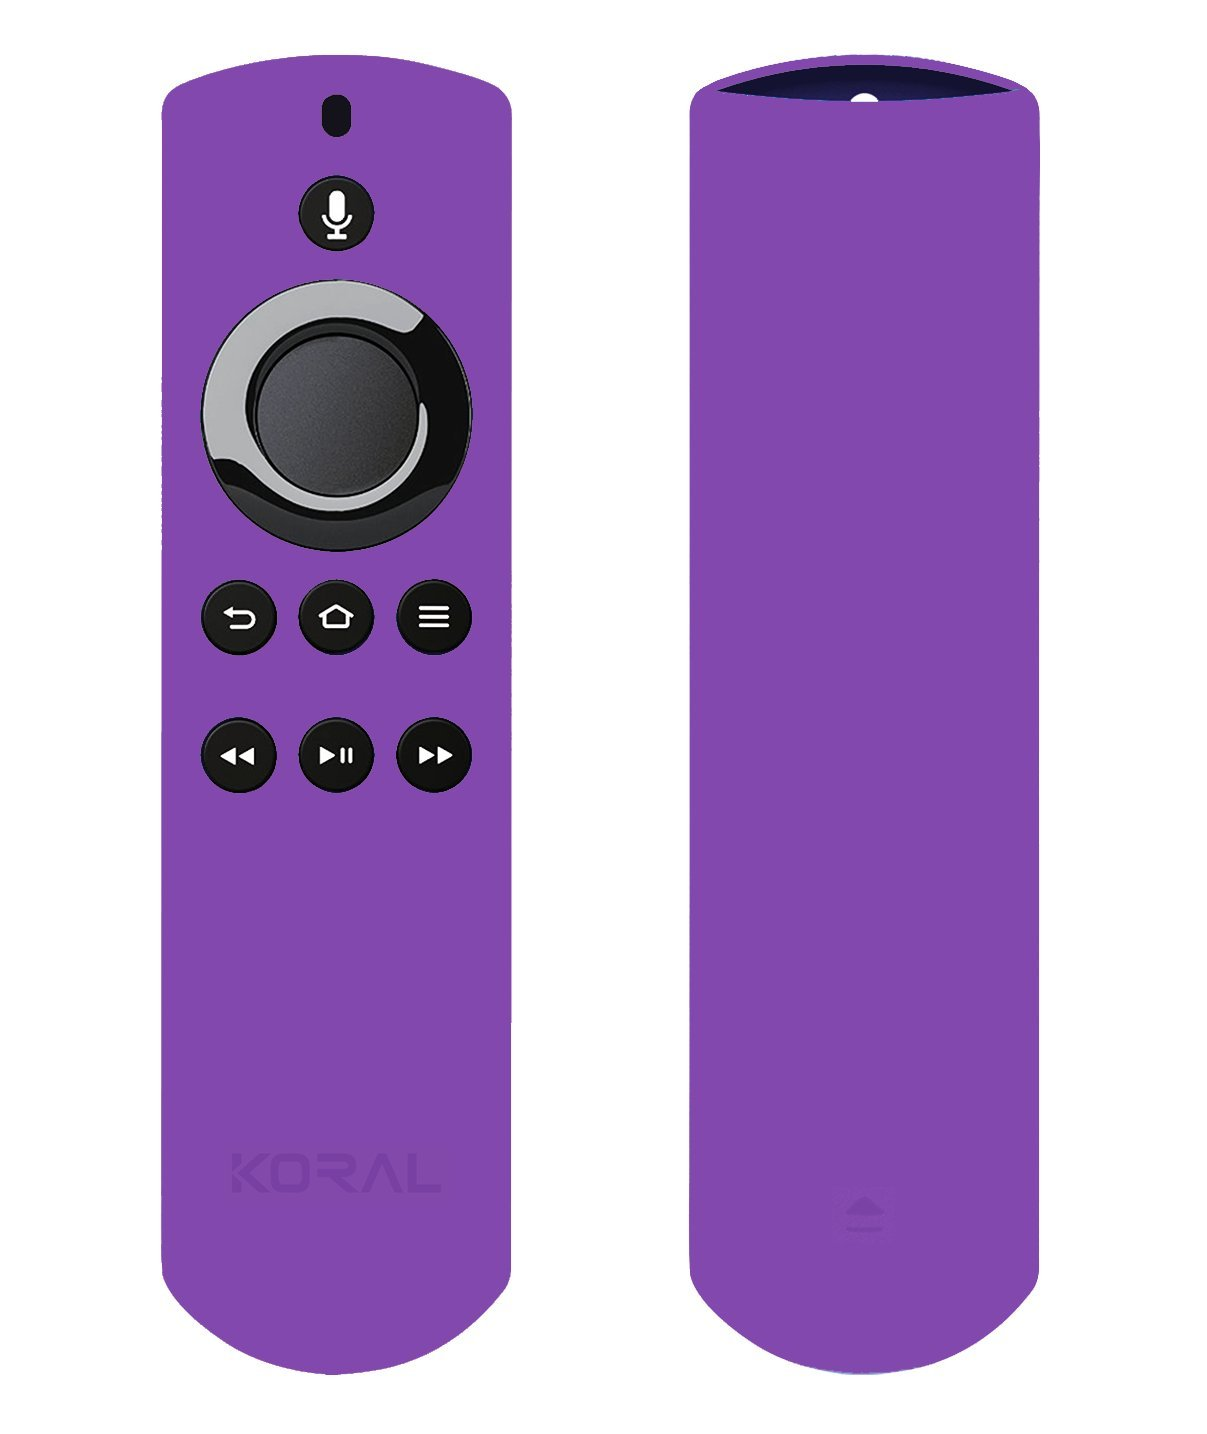 Koral Case for Alexa Voice Remote for Fire TV Stick, Fire TV Streaming Media Player, and Fire TV Cube (Purple)